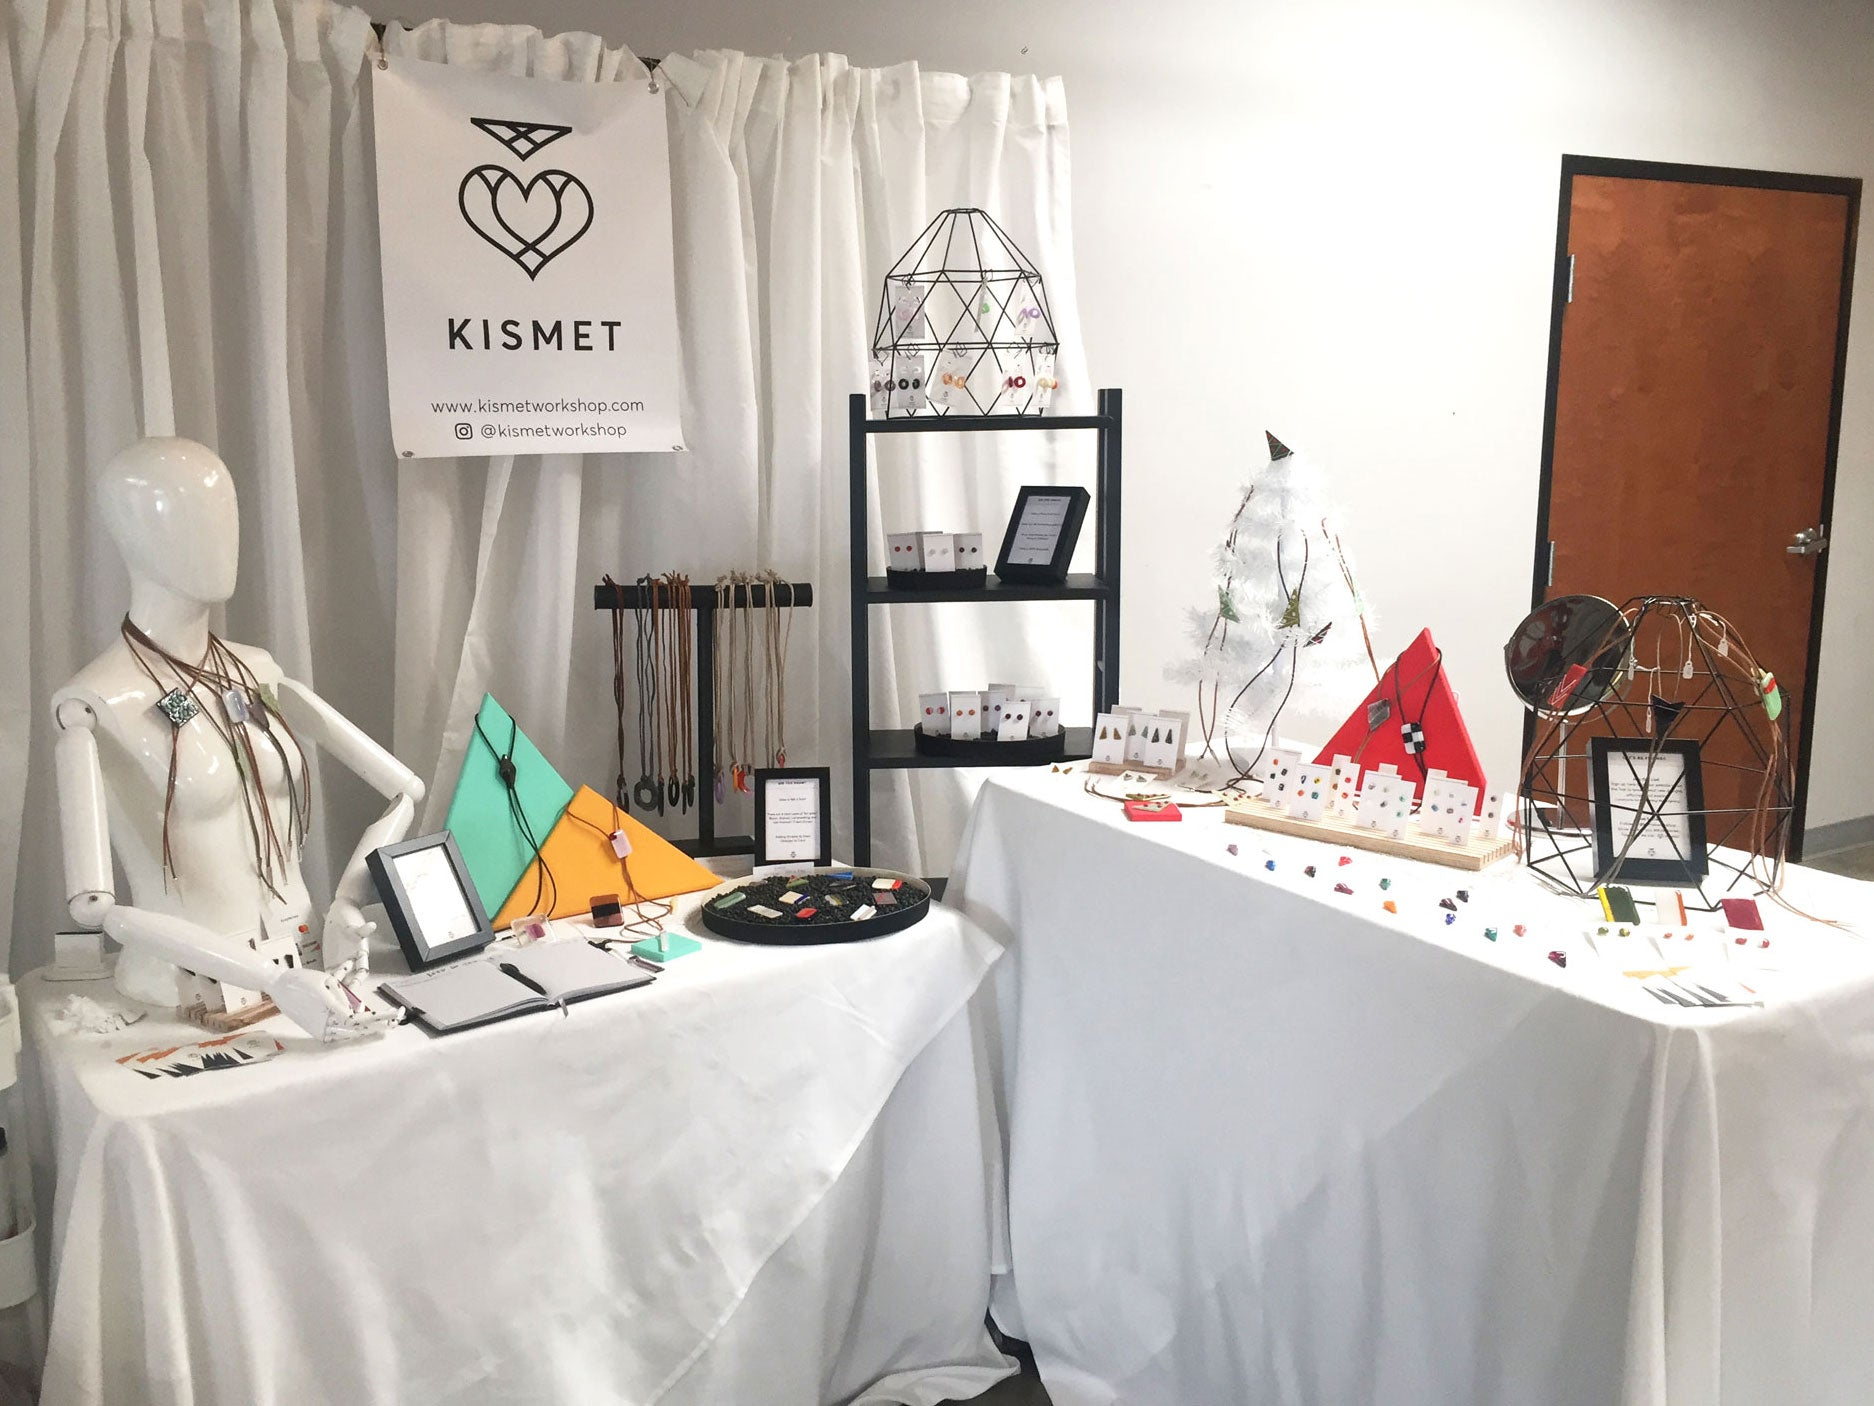 Kismet Workshop modern fused glass jewelry handmade with heart in Austin Texas by Katie, bolo, necklace, earrings, rings, retail display